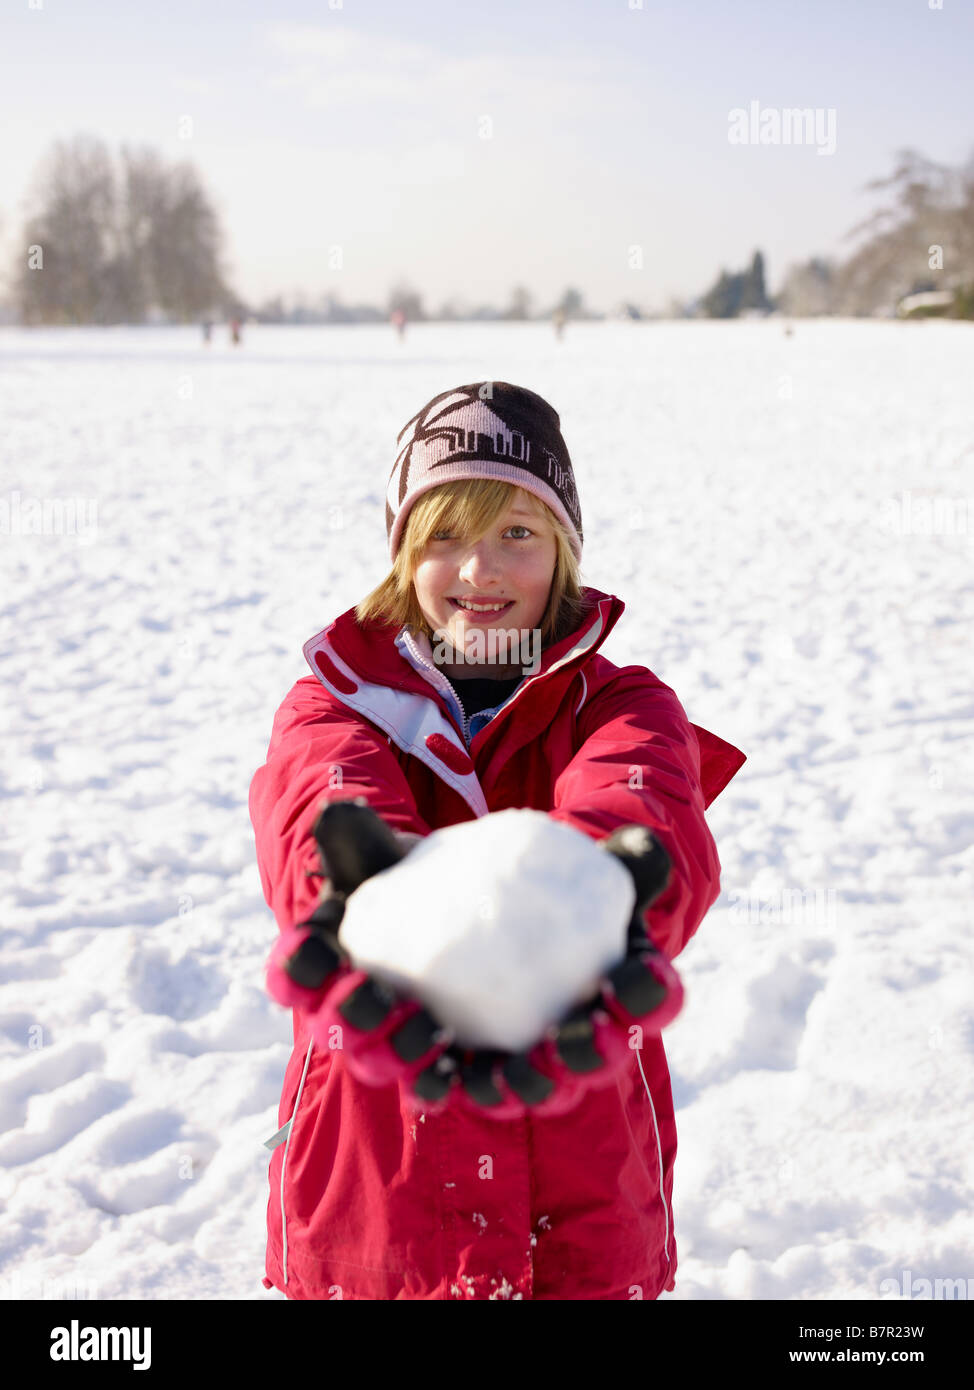 Girl holding a snowball on a snowy day Redbourn Hertfordshire England UK - Stock Image